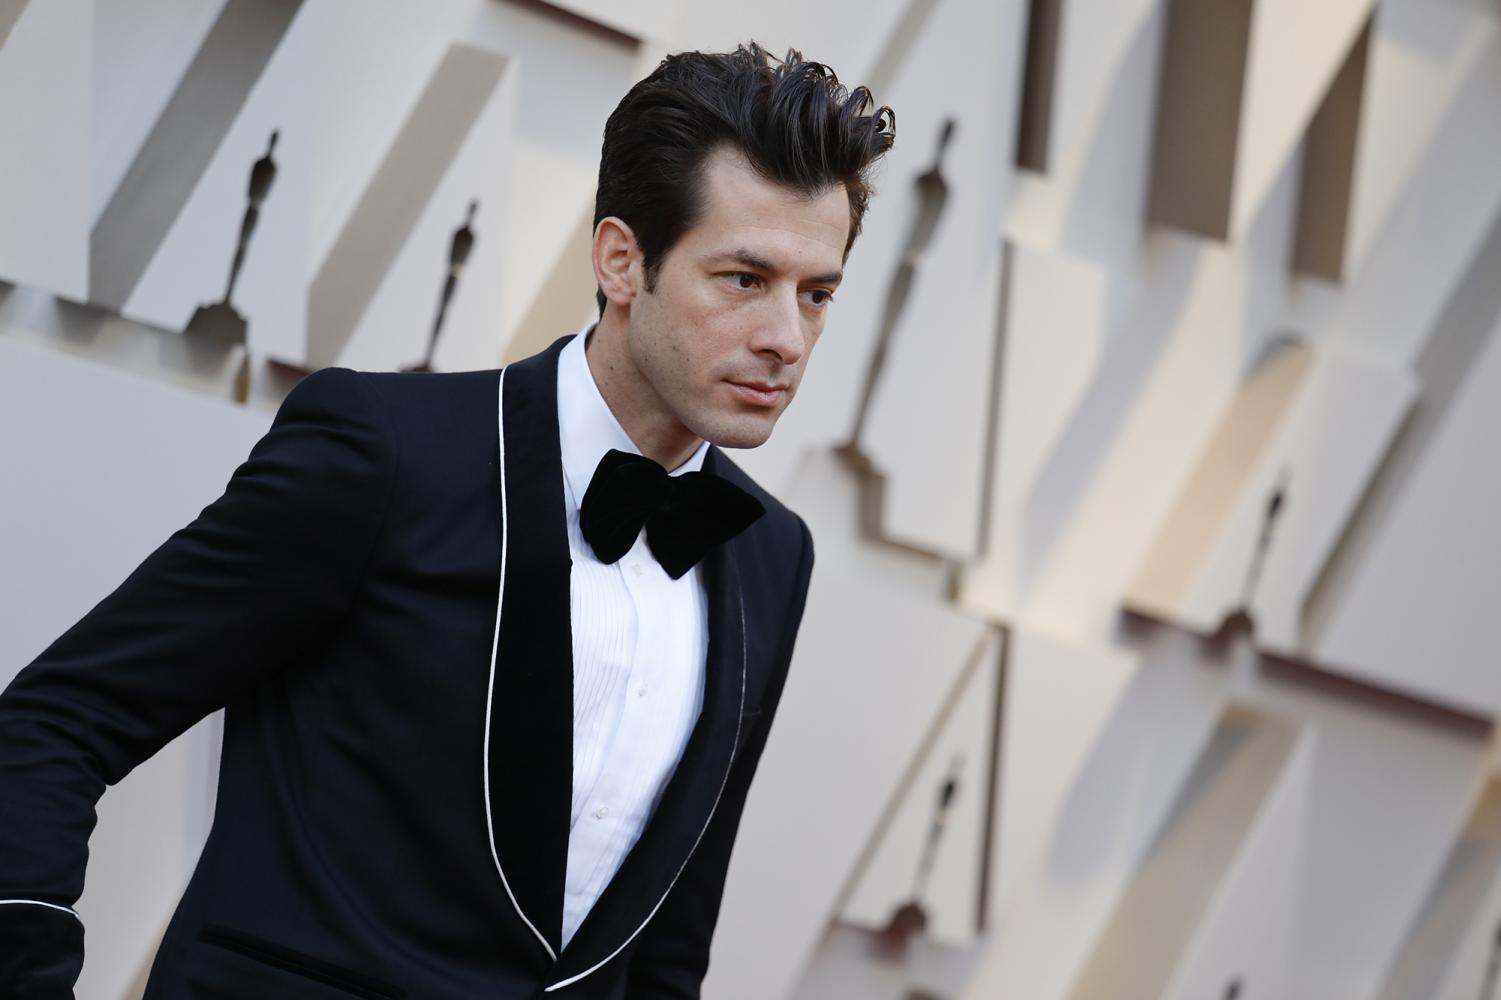 Mark Ronson, musician and producer at the 2019 91st Academy Awards.